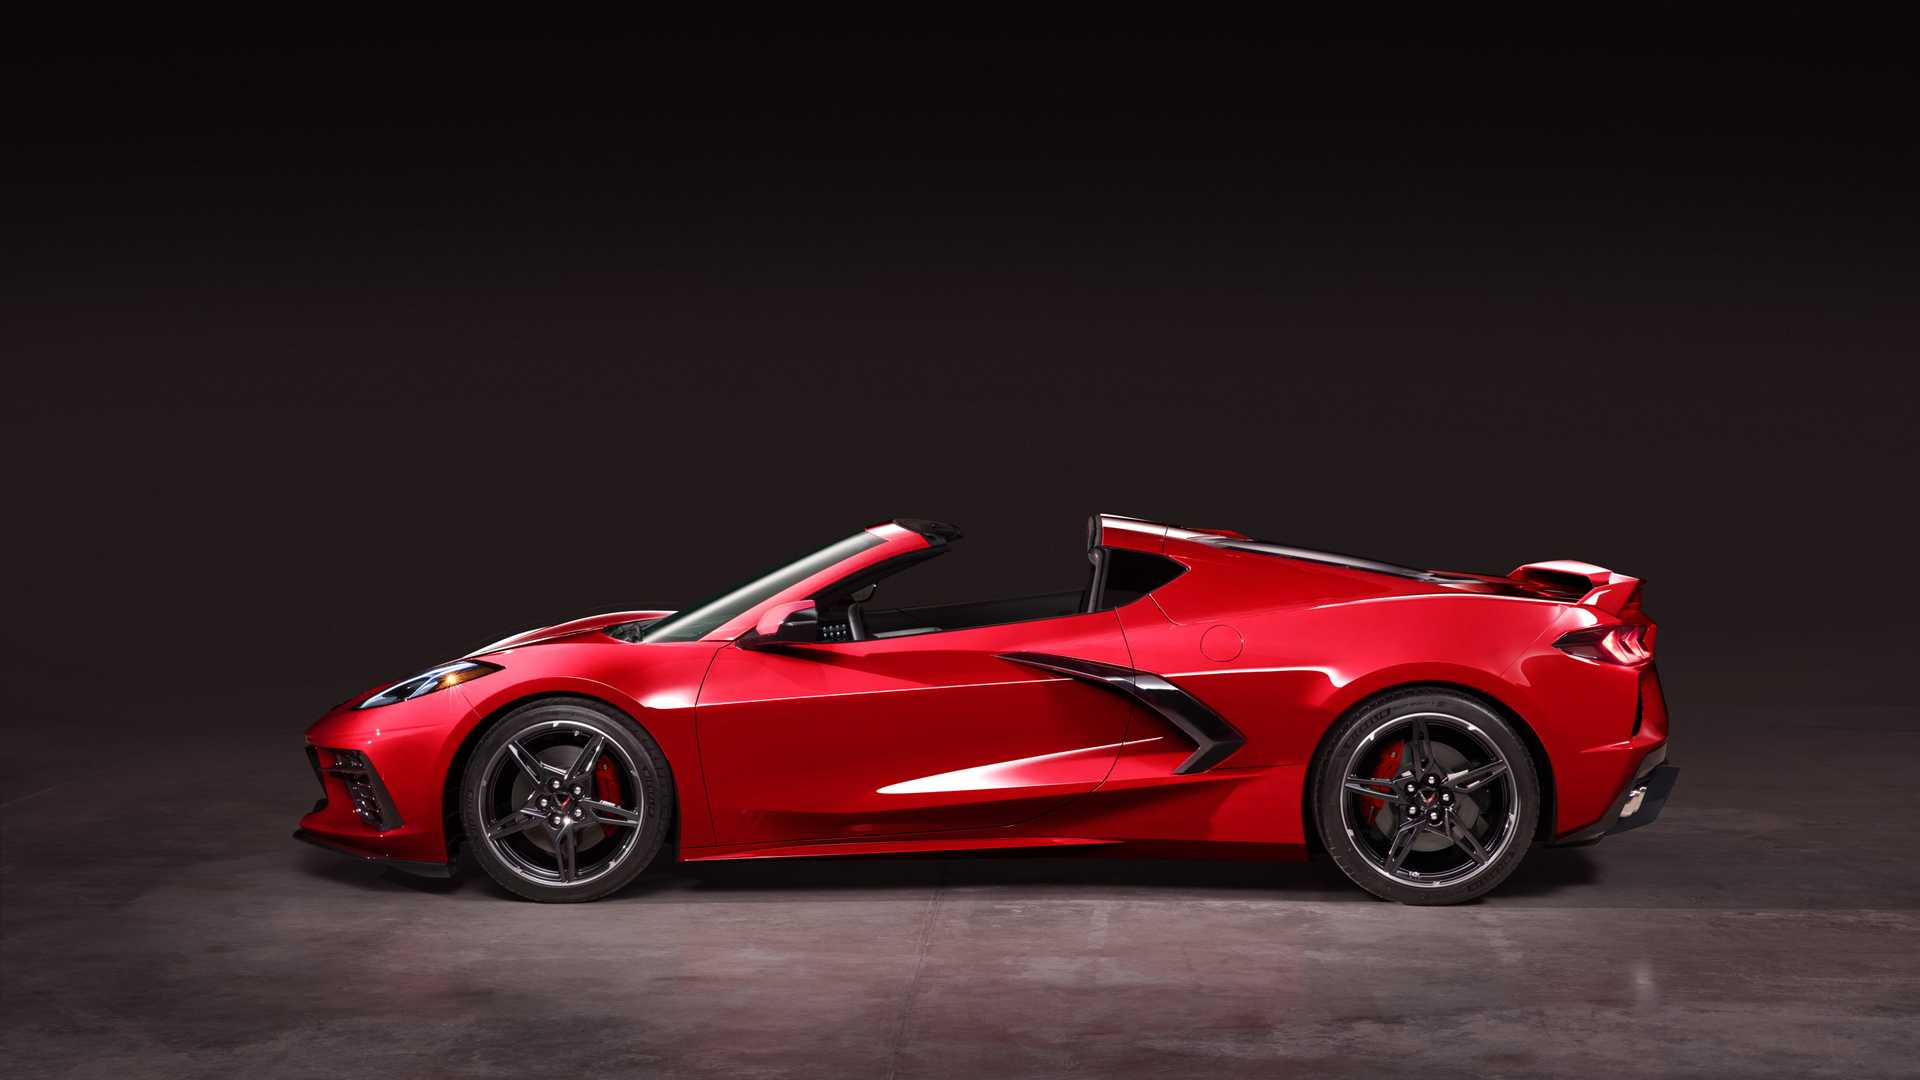 2020-chevrolet-corvette-stingray-28